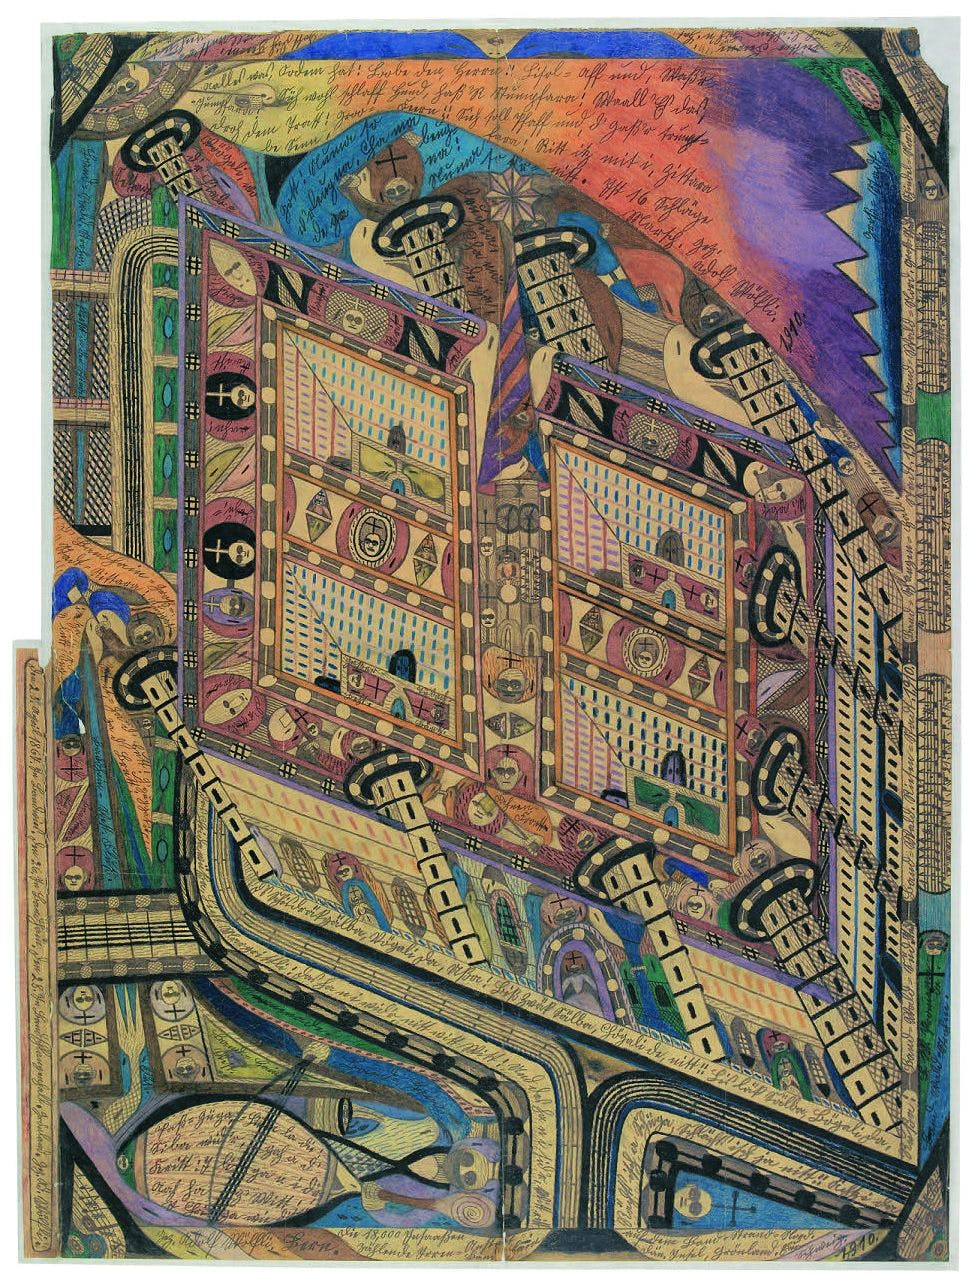 Mental Asylum Band-Copse, (1910), Adolf Wölfli, Prague City Gallery